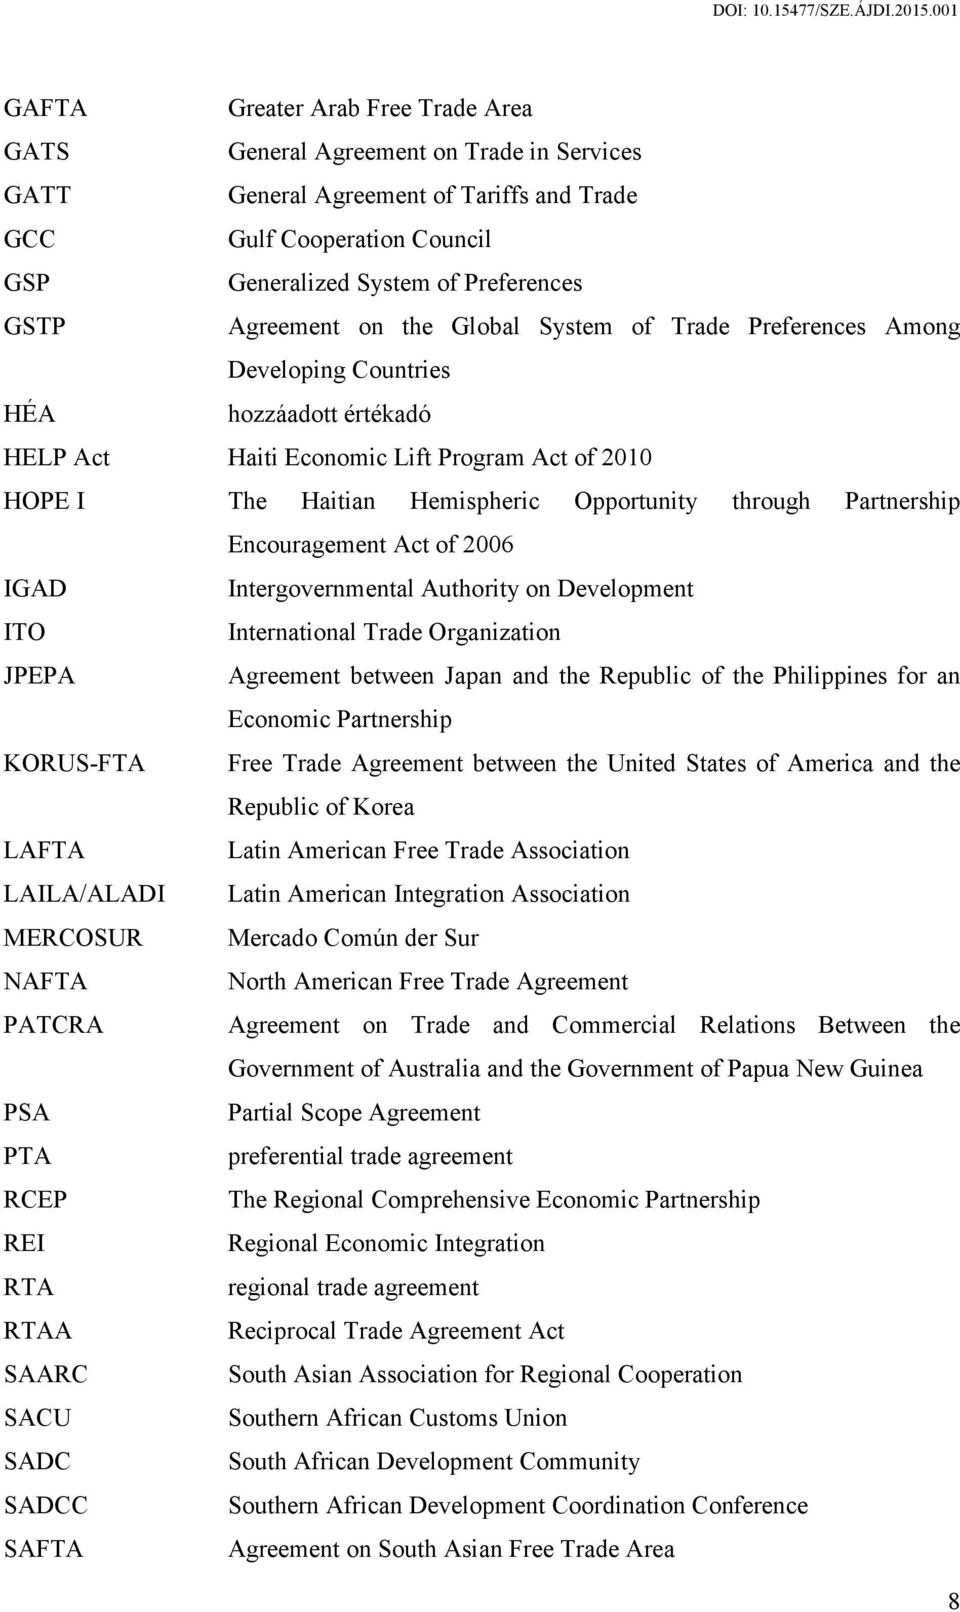 through Partnership Encouragement Act of 2006 IGAD Intergovernmental Authority on Development ITO International Trade Organization JPEPA Agreement between Japan and the Republic of the Philippines